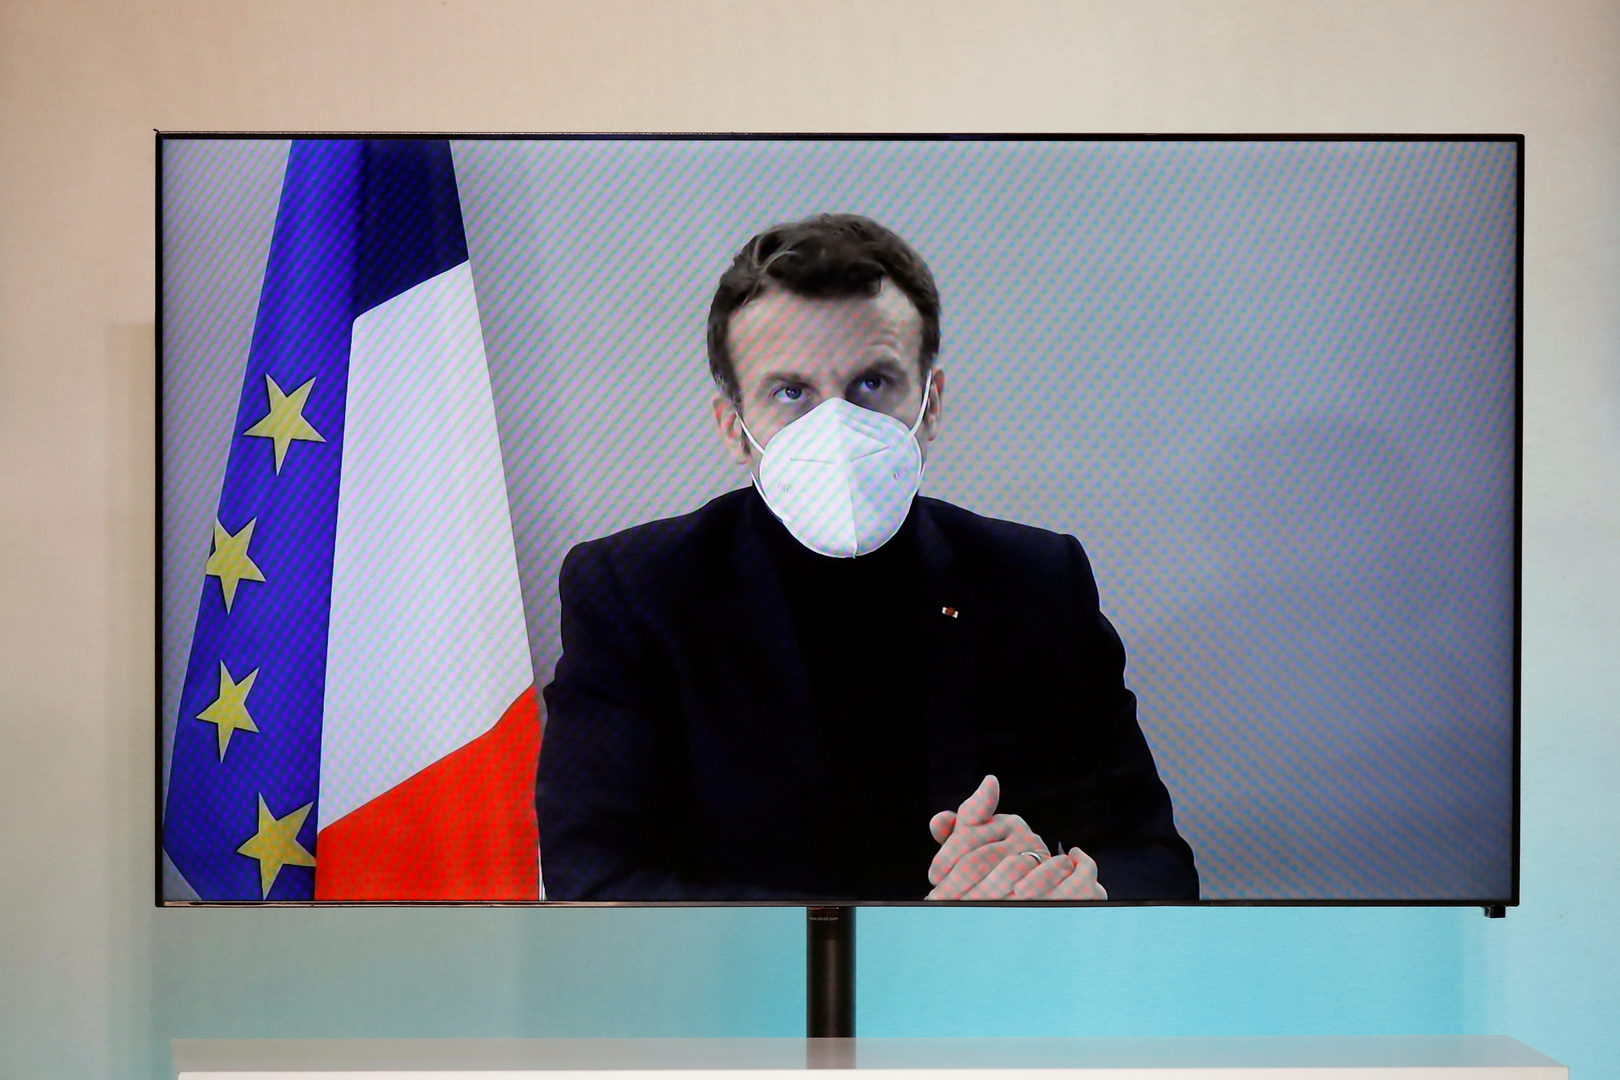 Elysee reveals the latest developments in the health of Macron, who is infected with